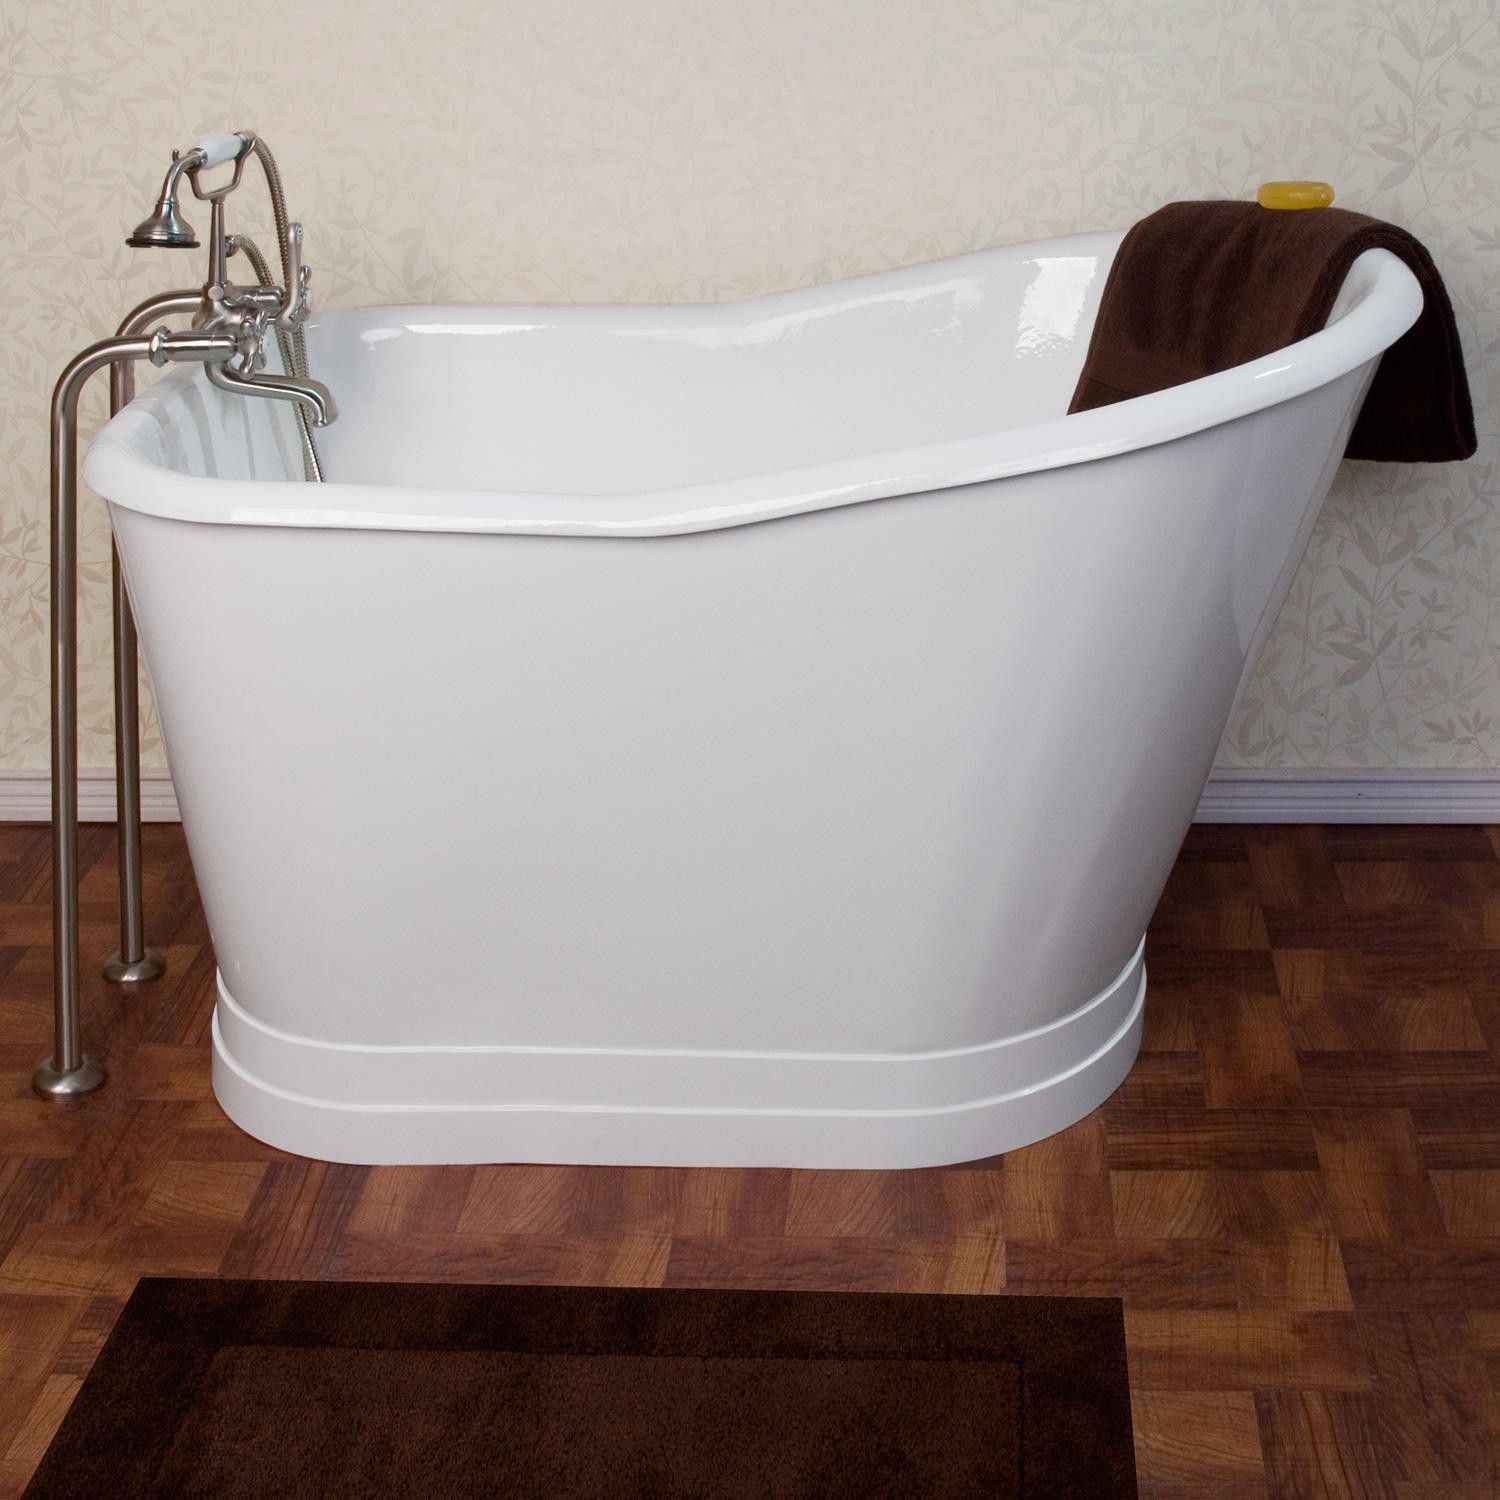 siglo best shower curtain for clawfoot tub. 52  Winton Cast Iron Skirted Slipper Tub No Overflow Tubs